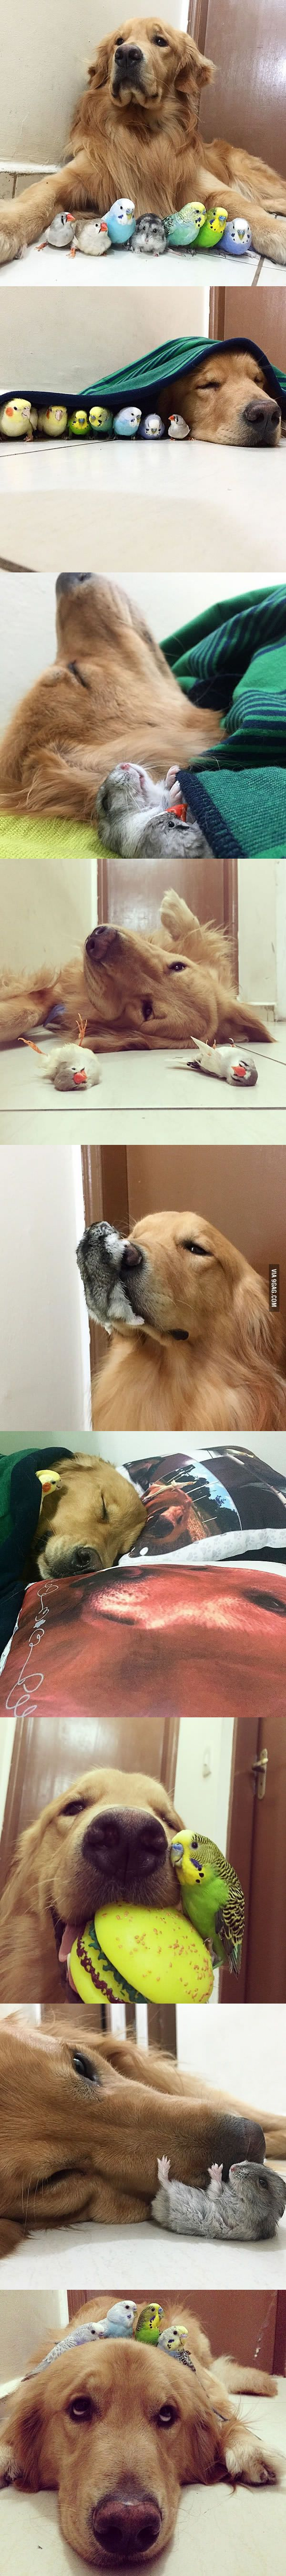 A Dog, 8 Birds And A Cute Hamster Make The Best Friends Ever